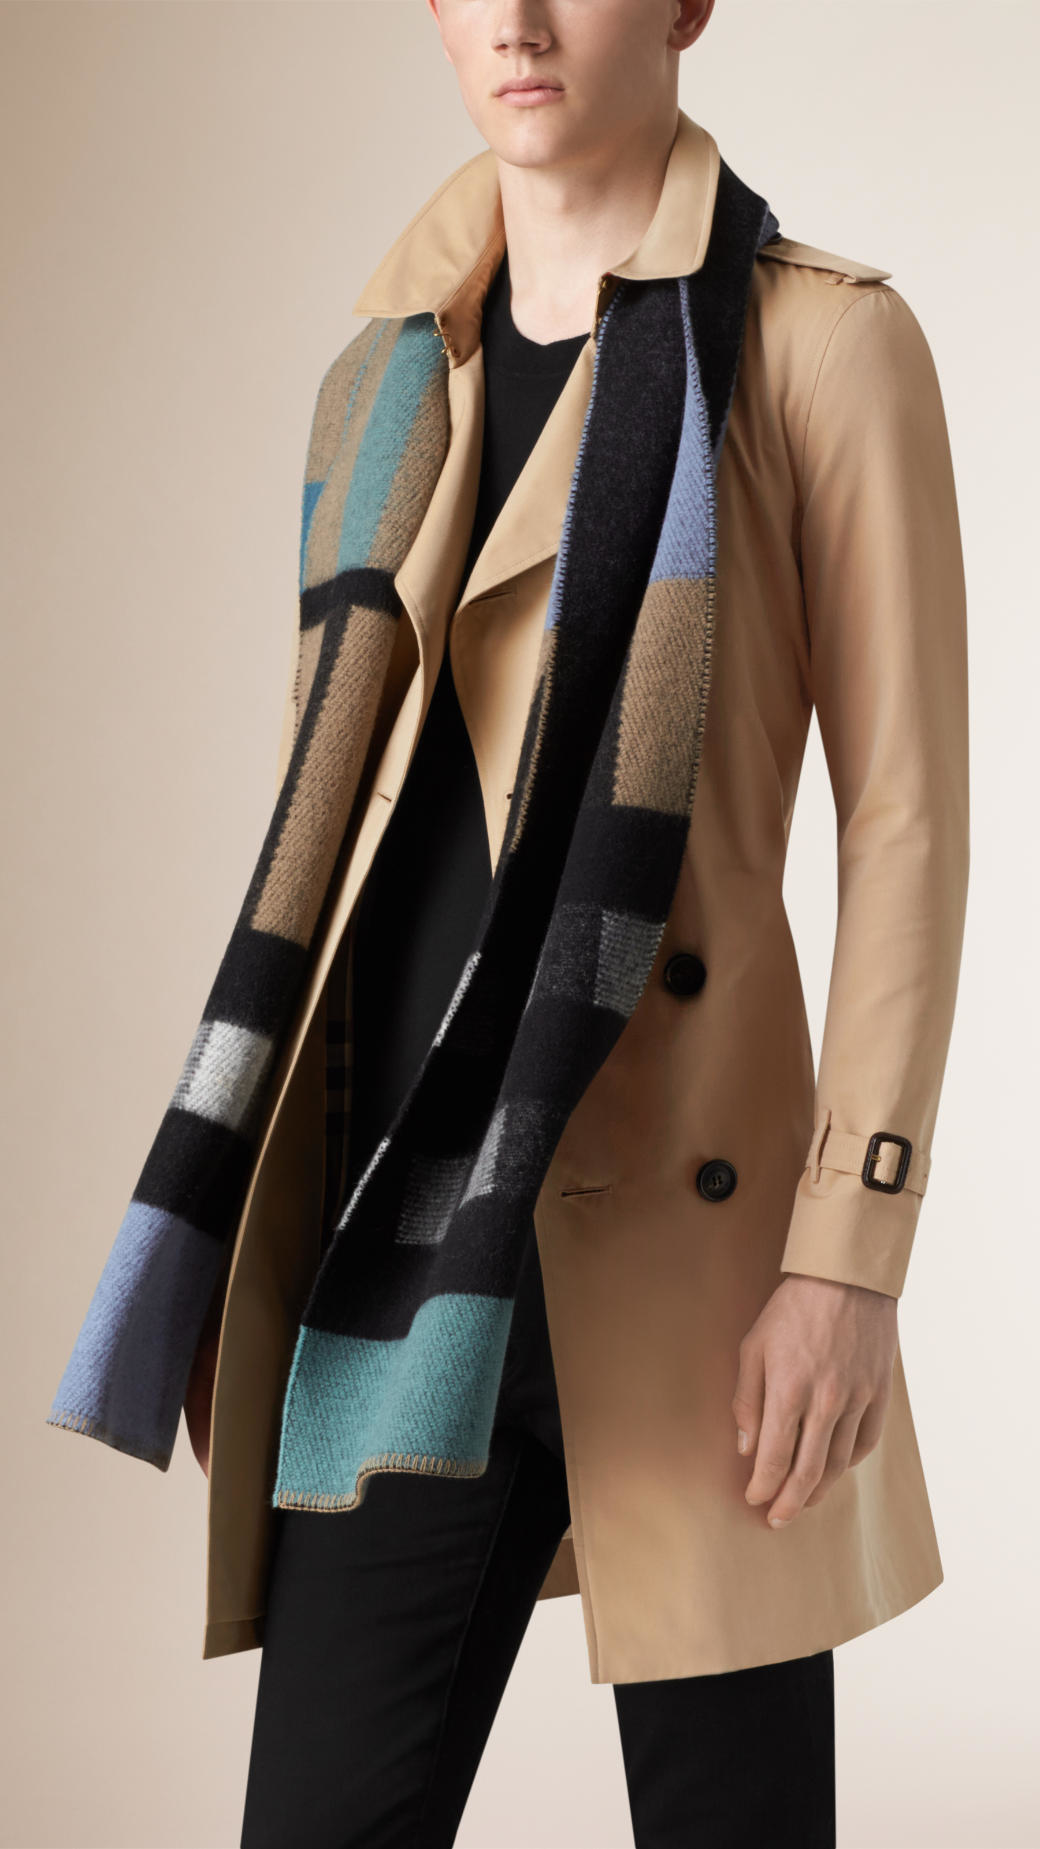 Burberry Women Shirts Outlet